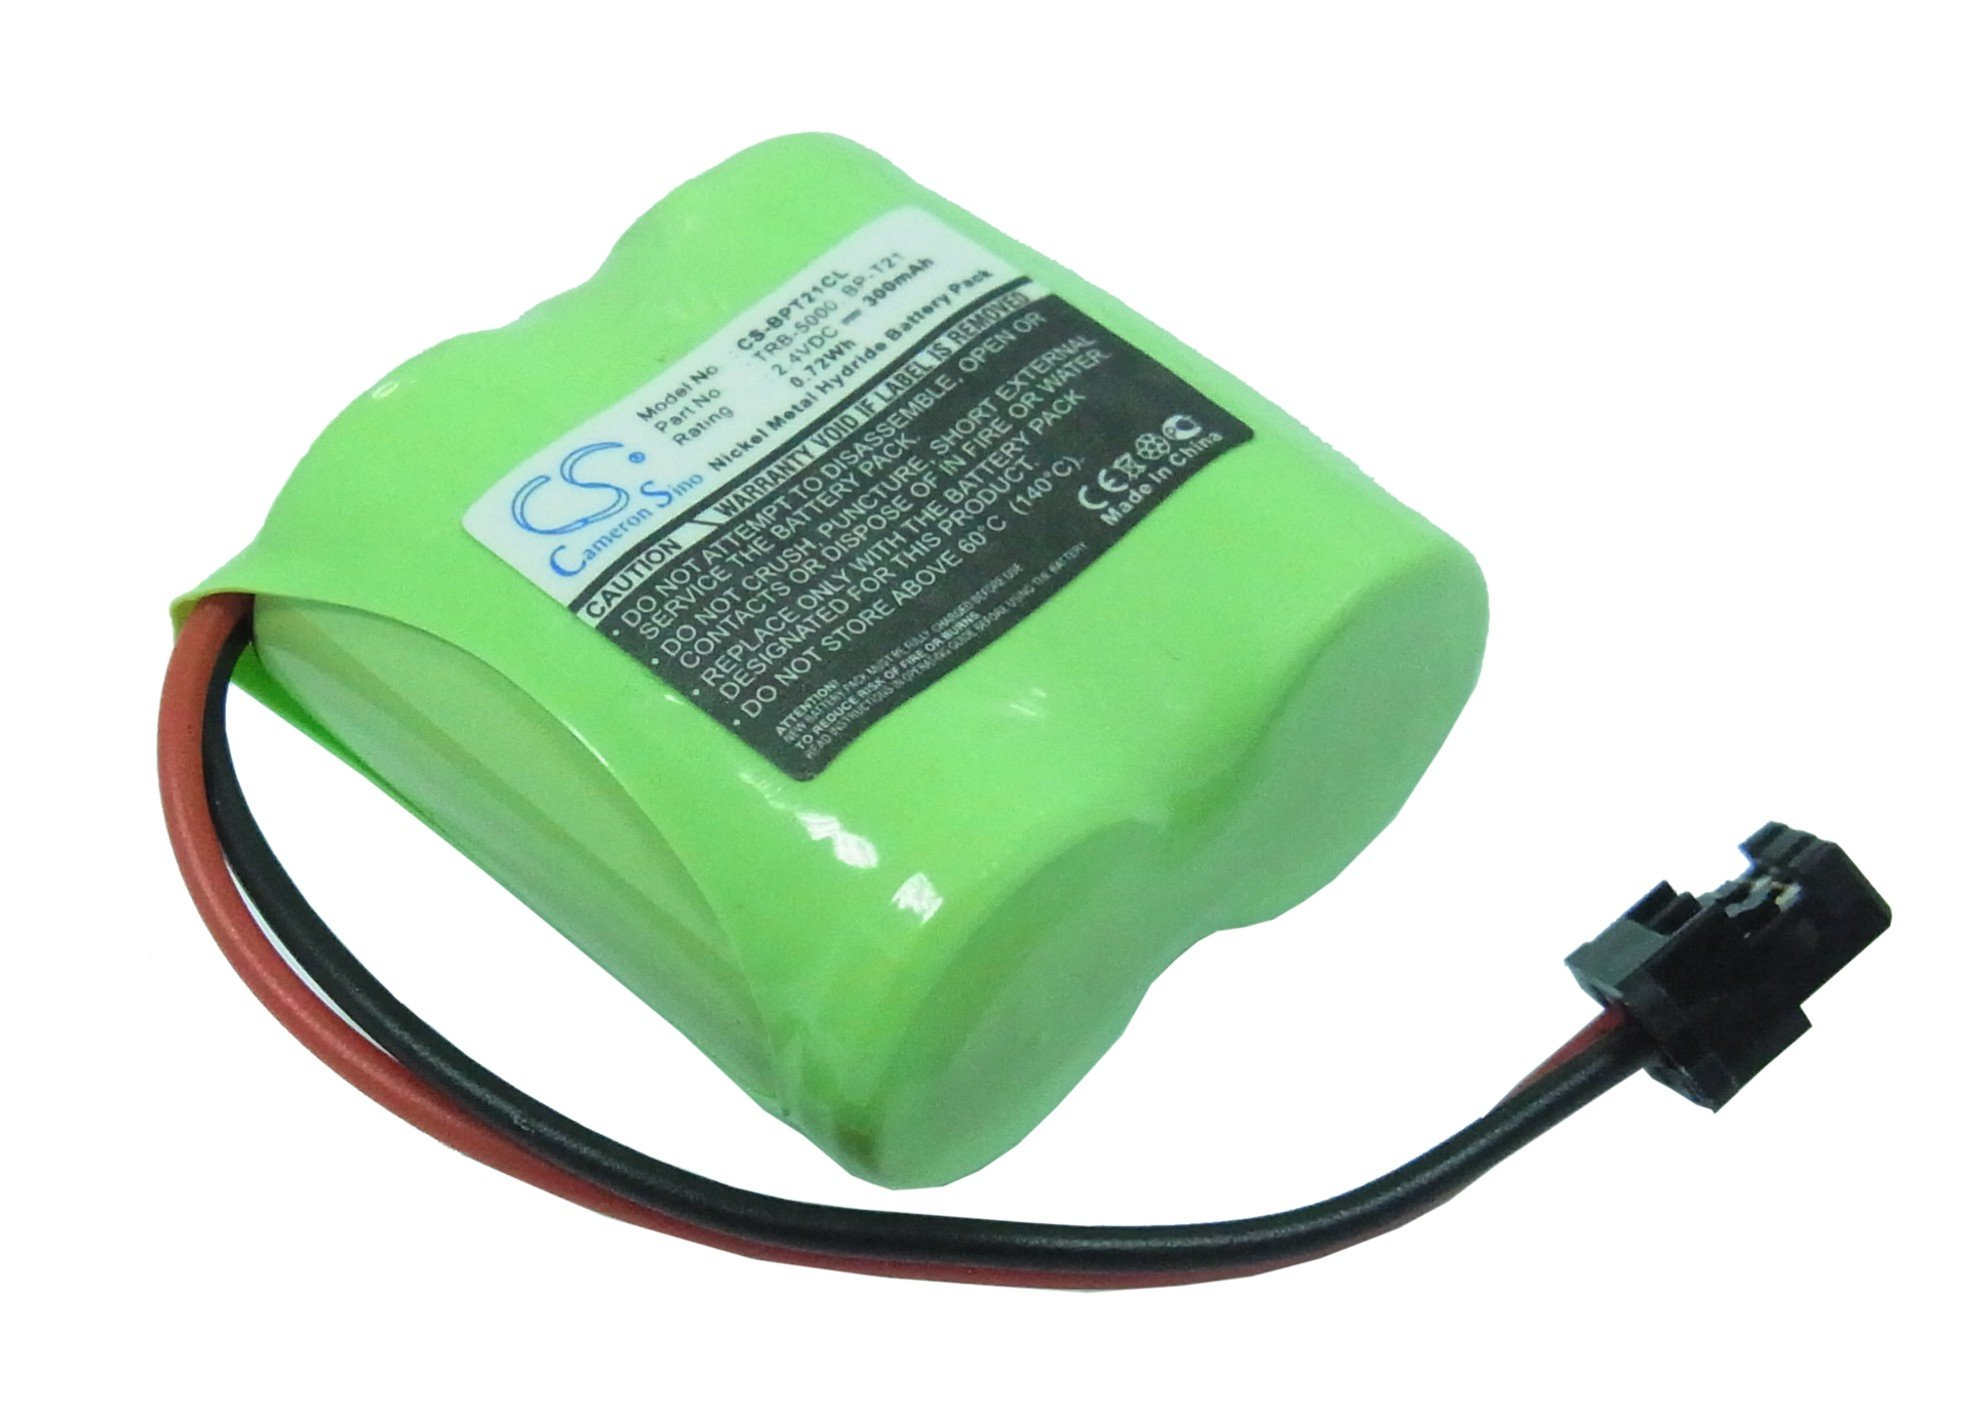 Cameron Sino 300mAh/0.72Wh Replacement Battery for Sony SPP-62